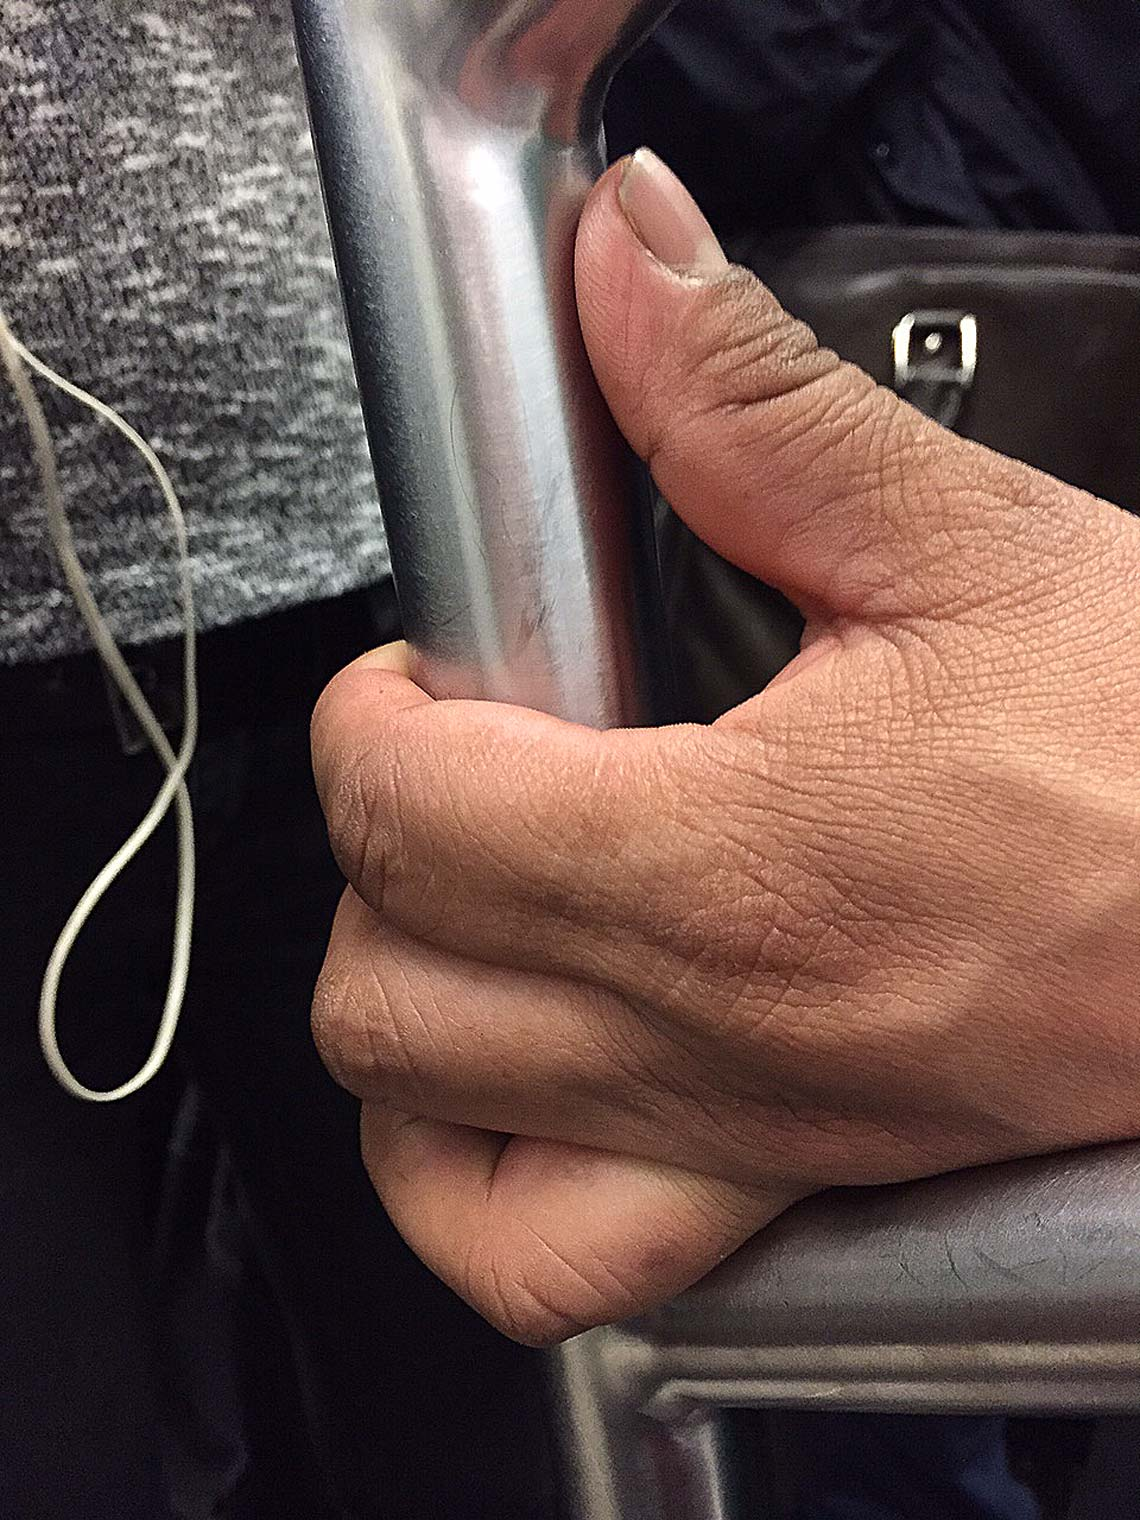 hand-on-subway-pole